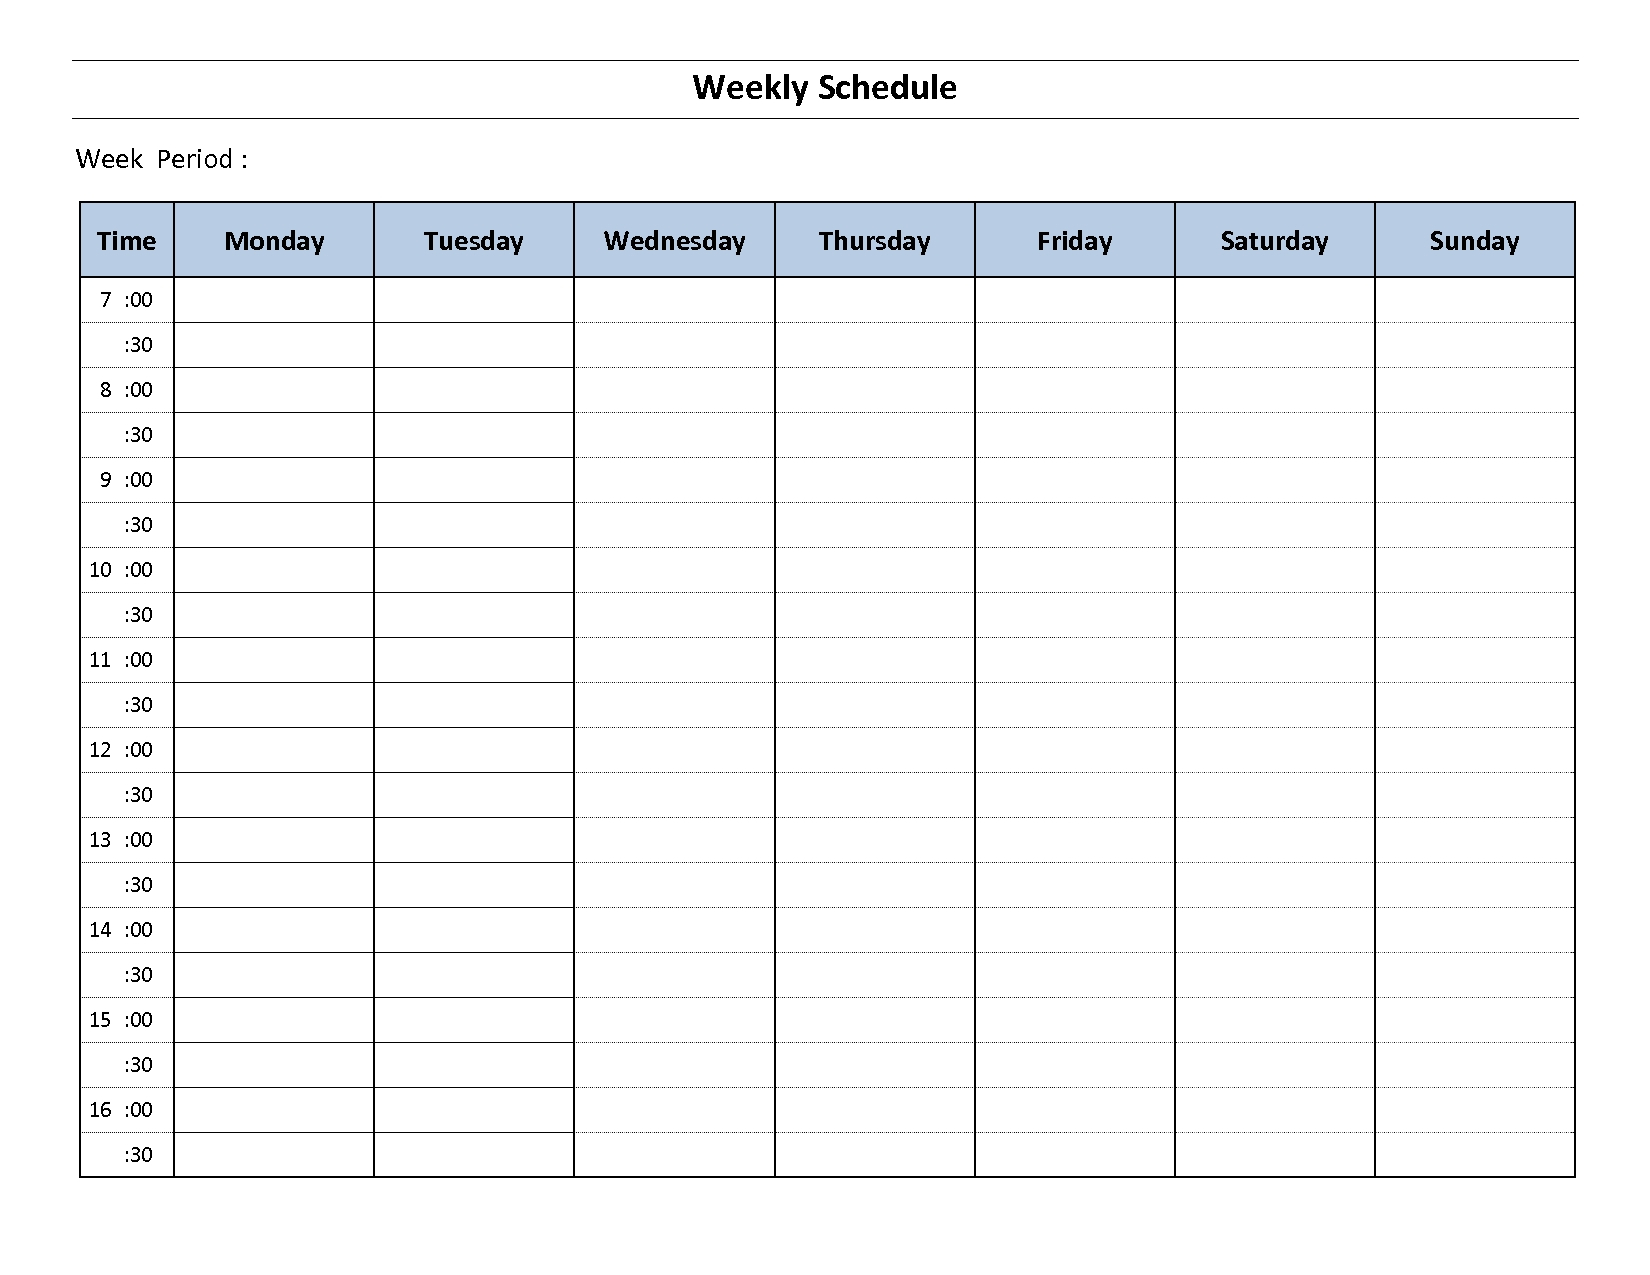 Weekly Calendar With Time Slots Template | Calendar Free Time Slot Template